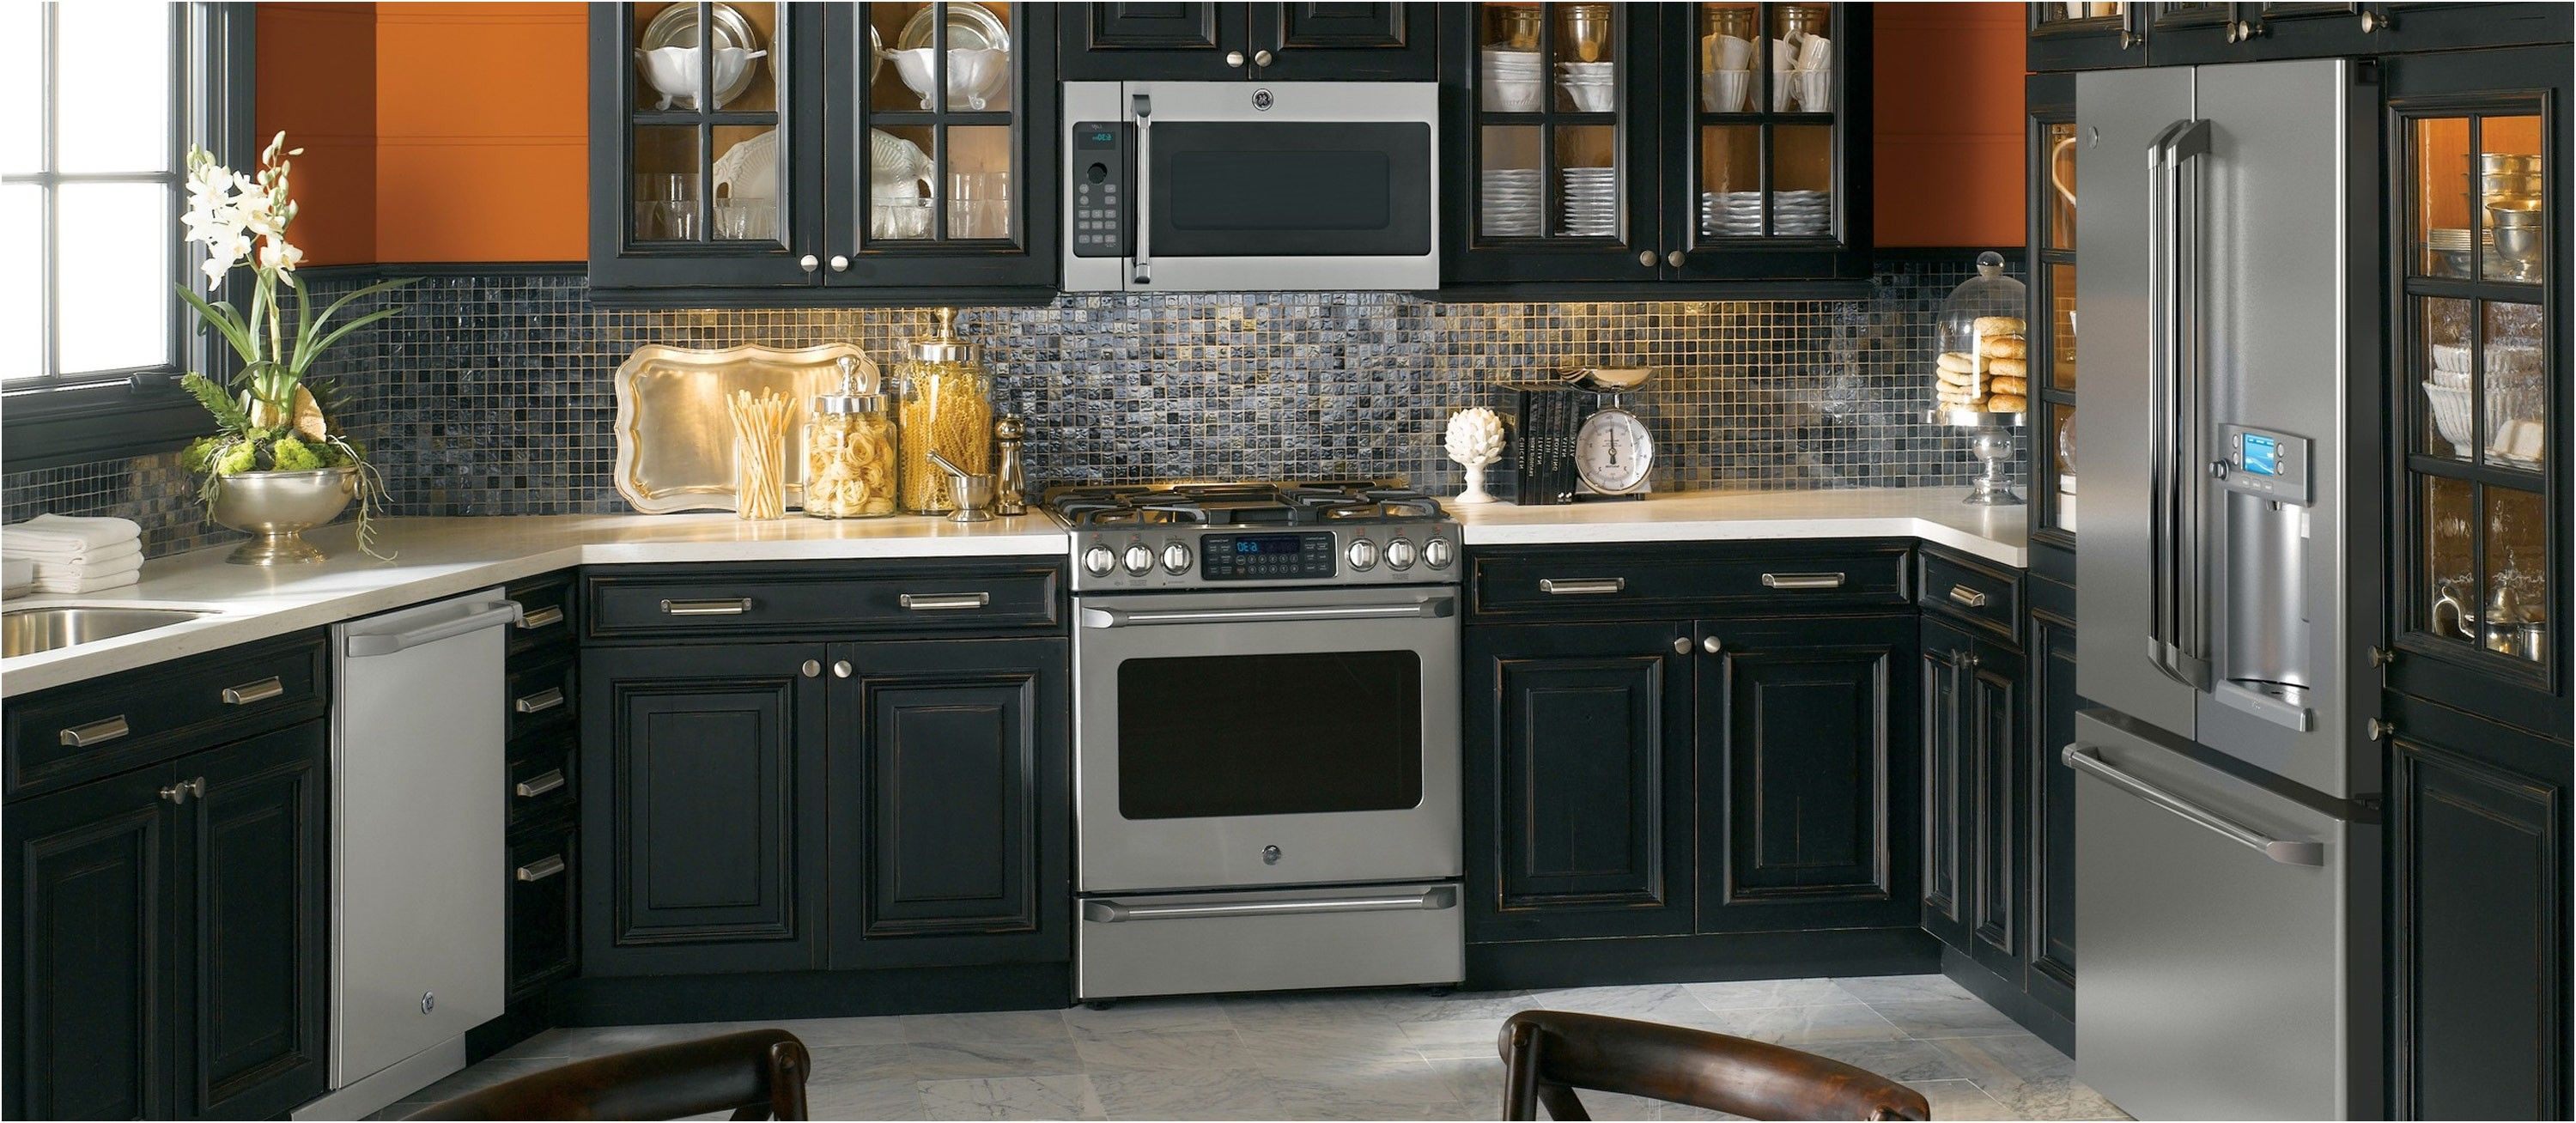 Unique Kitchen Cabinet Colors With Stainless Steel Appliances